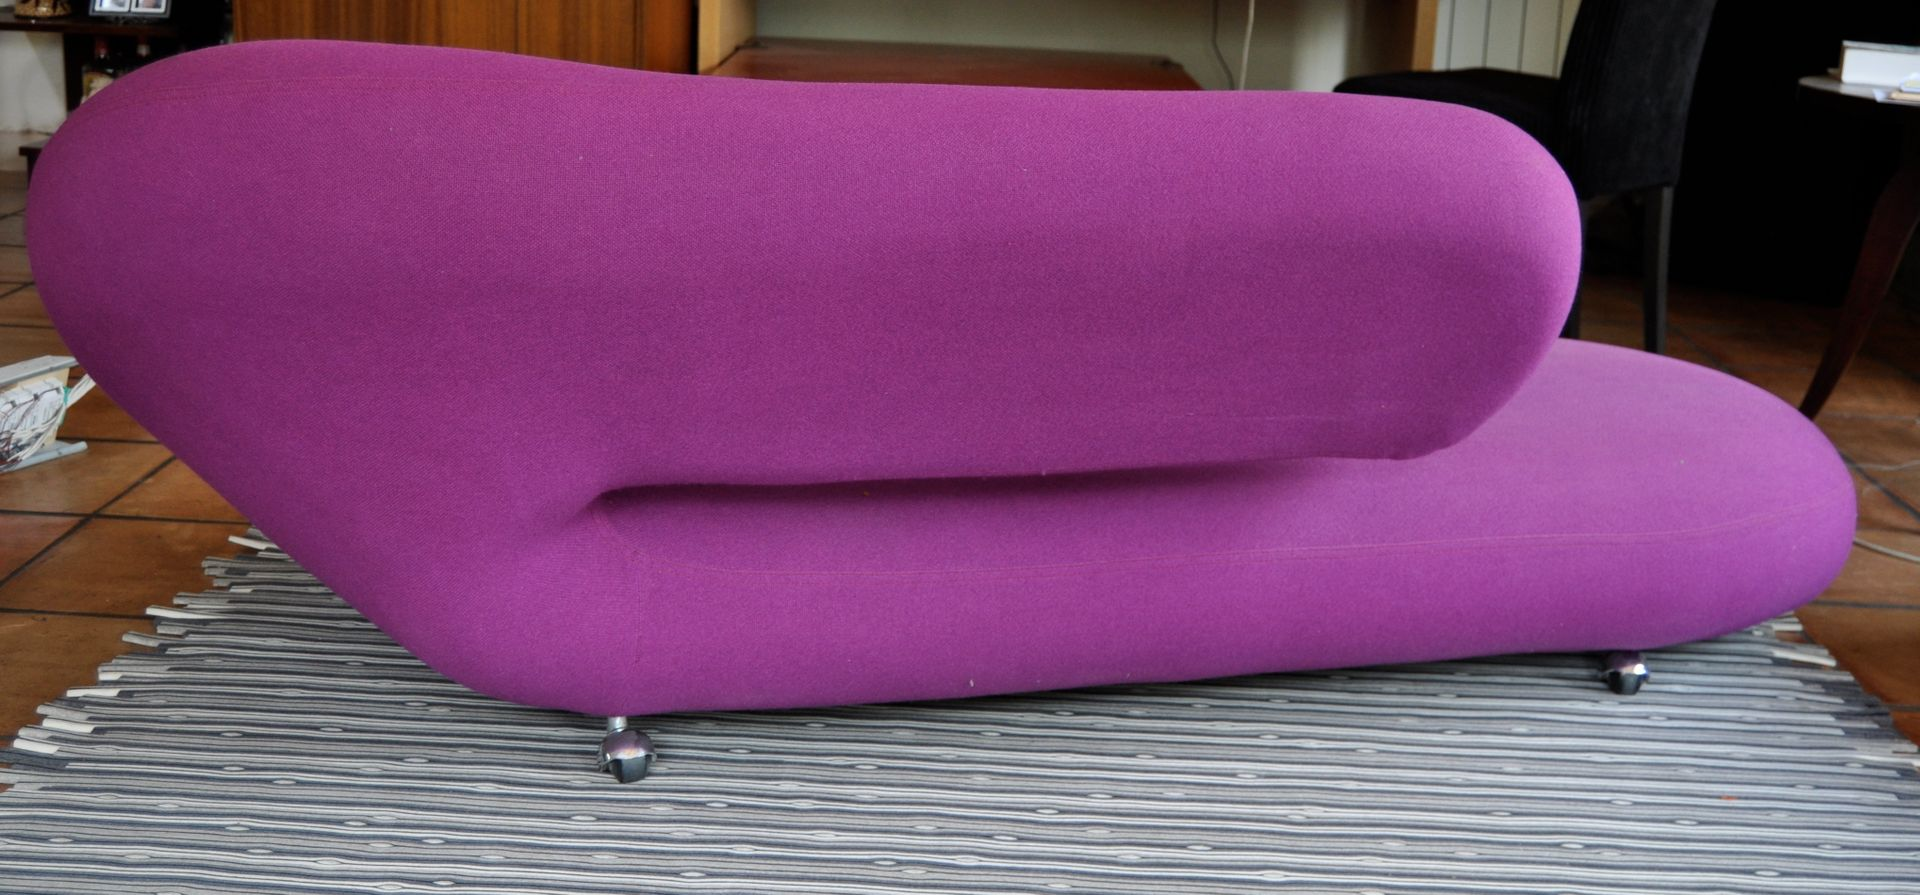 Cleopatra sofa or chaise longue by harcourt for artifort for Artifort cleopatra chaise longue